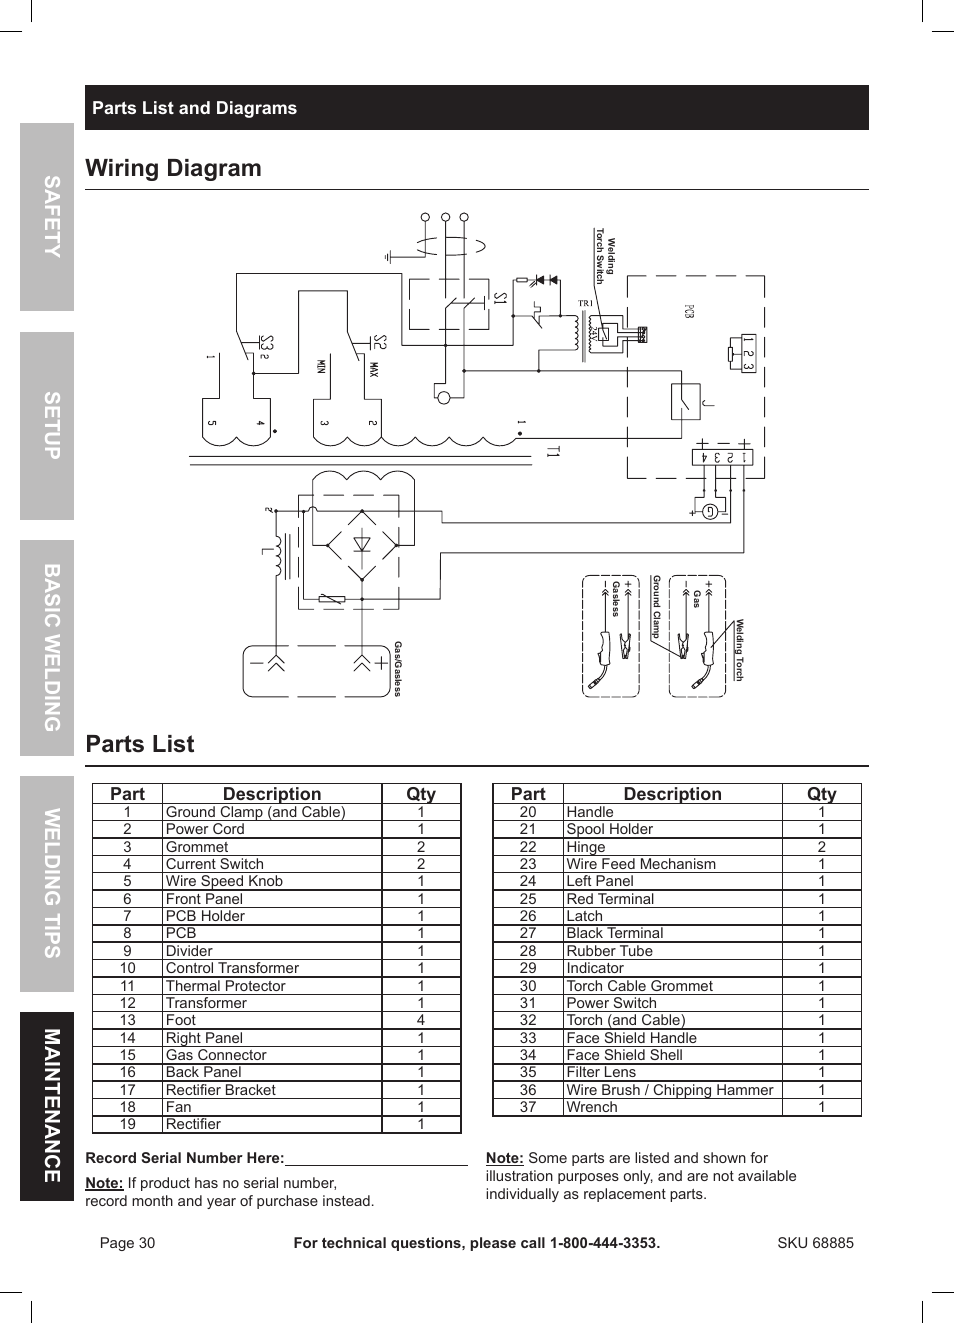 medium resolution of wiring diagram parts list chicago electric wire feed welder mig 170 user manual page 30 32